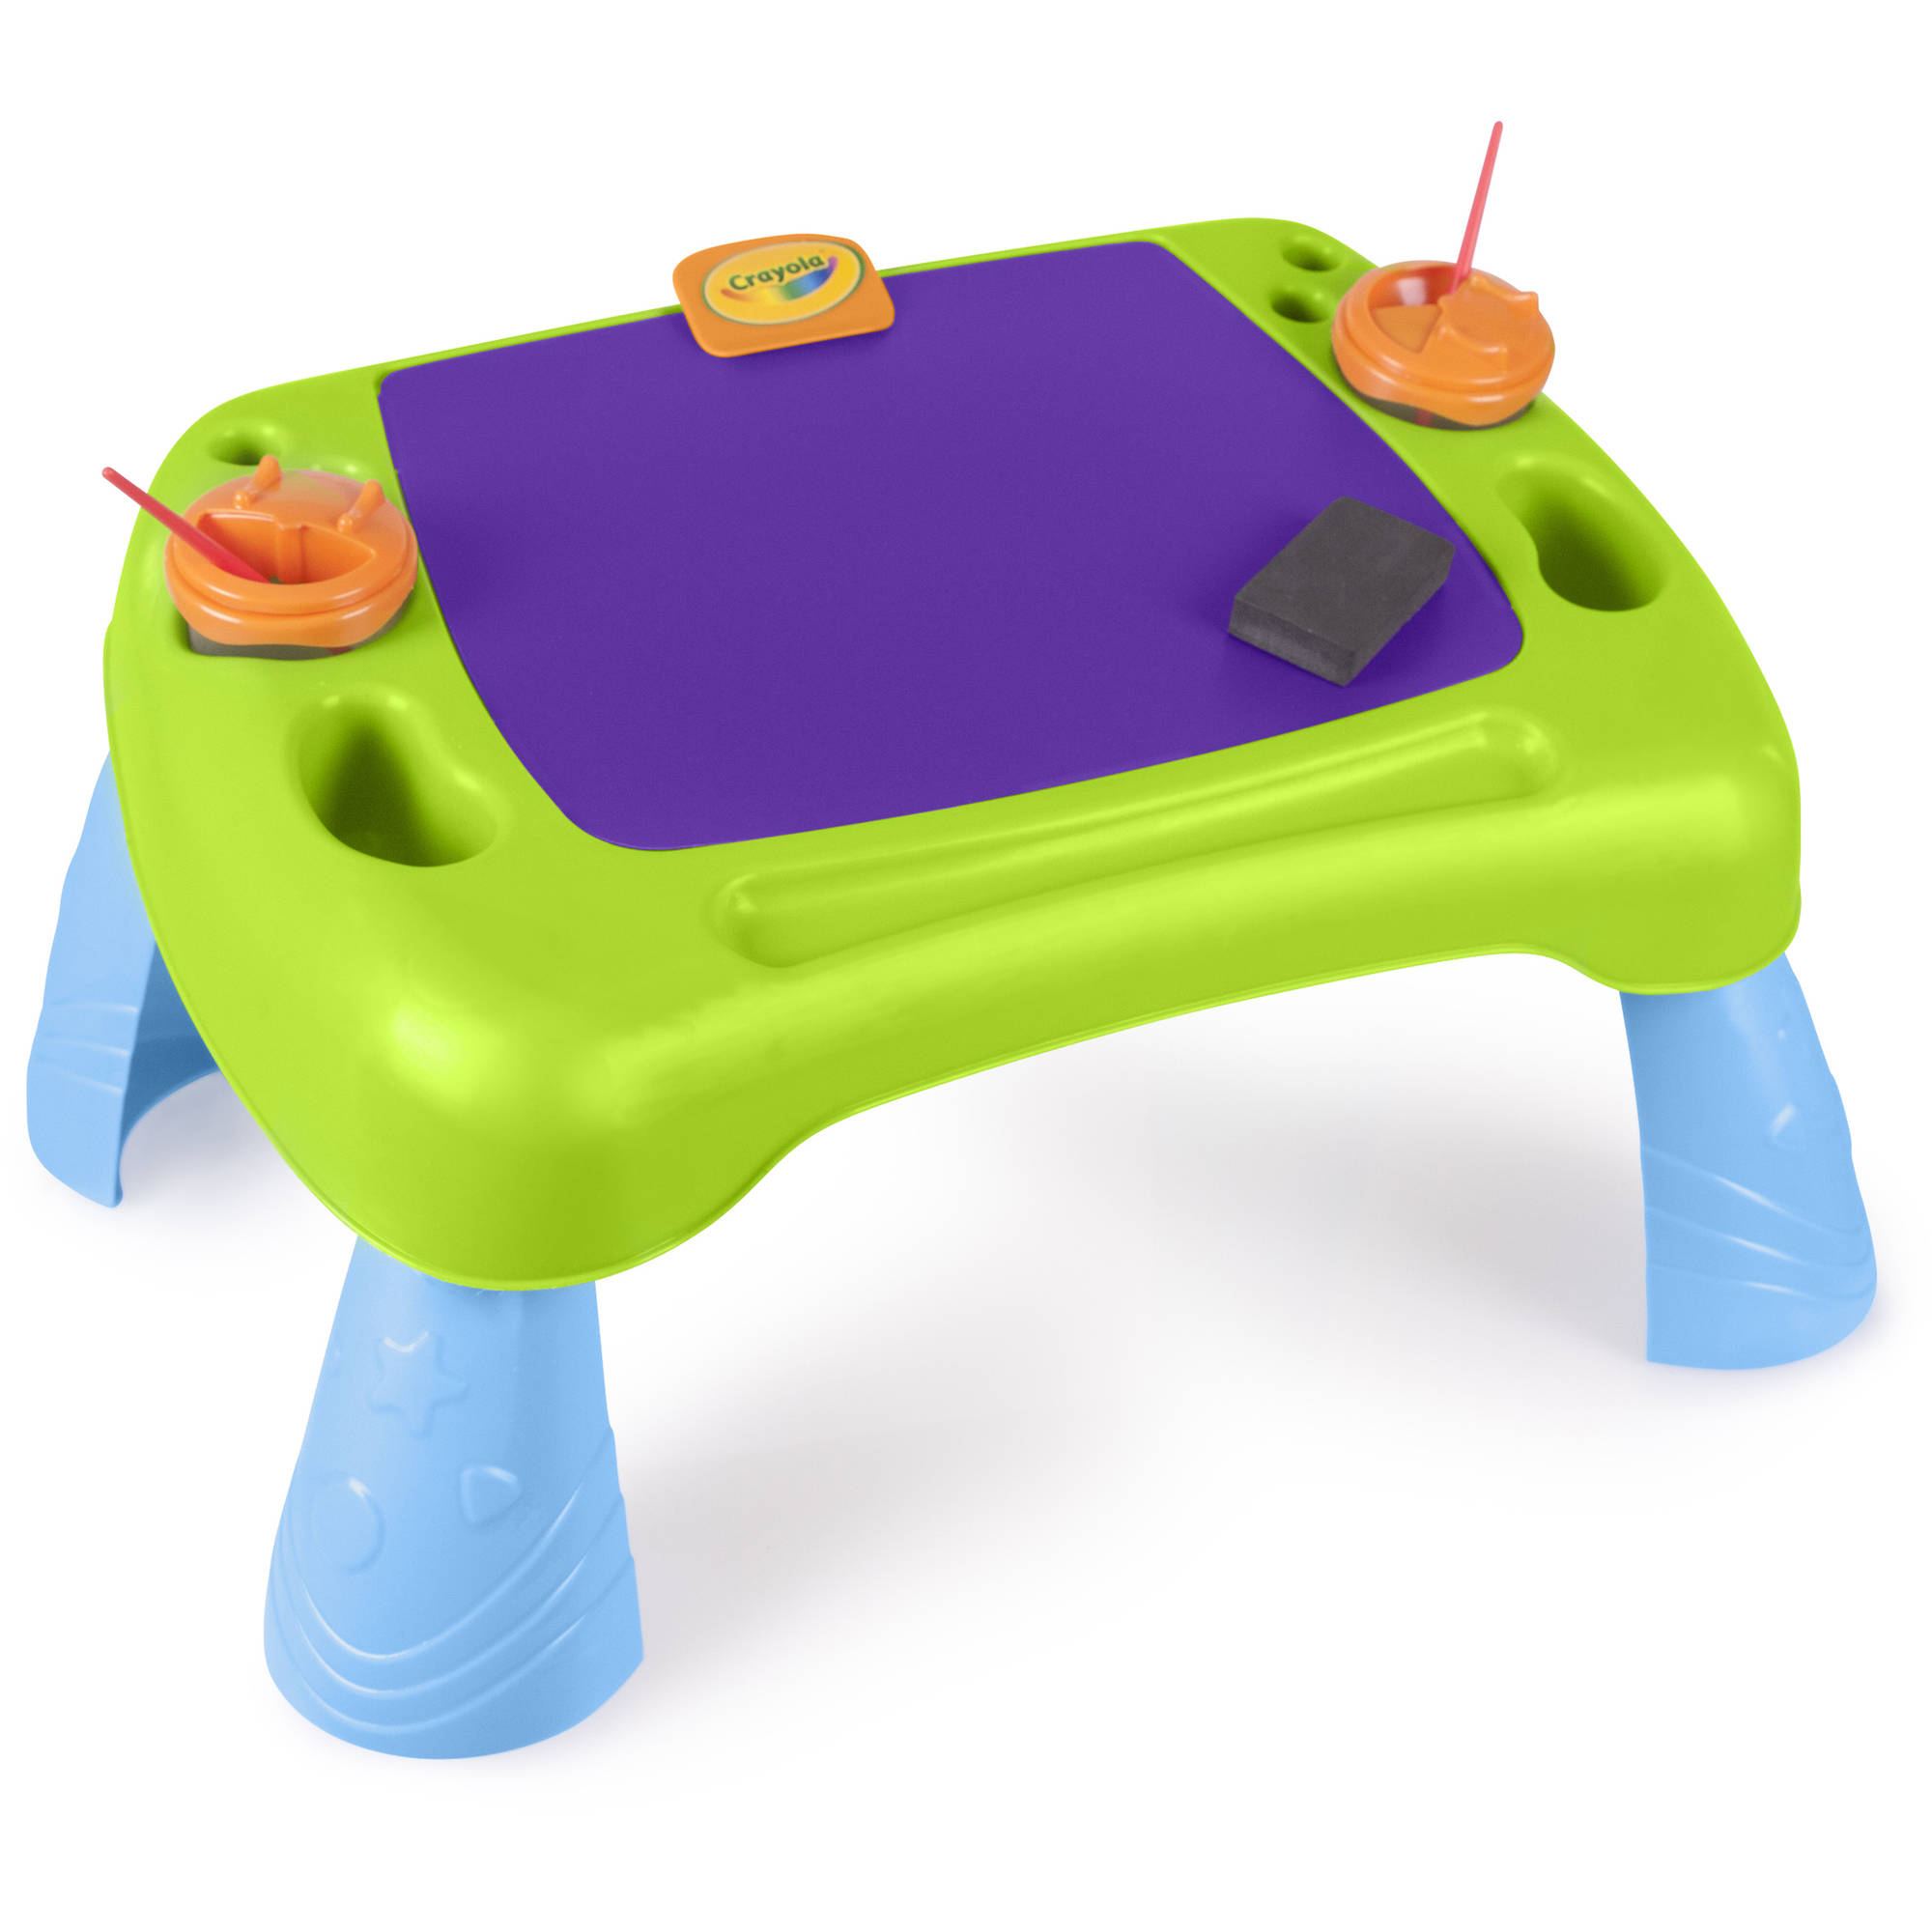 Crayola Paint N Draw Activity Table